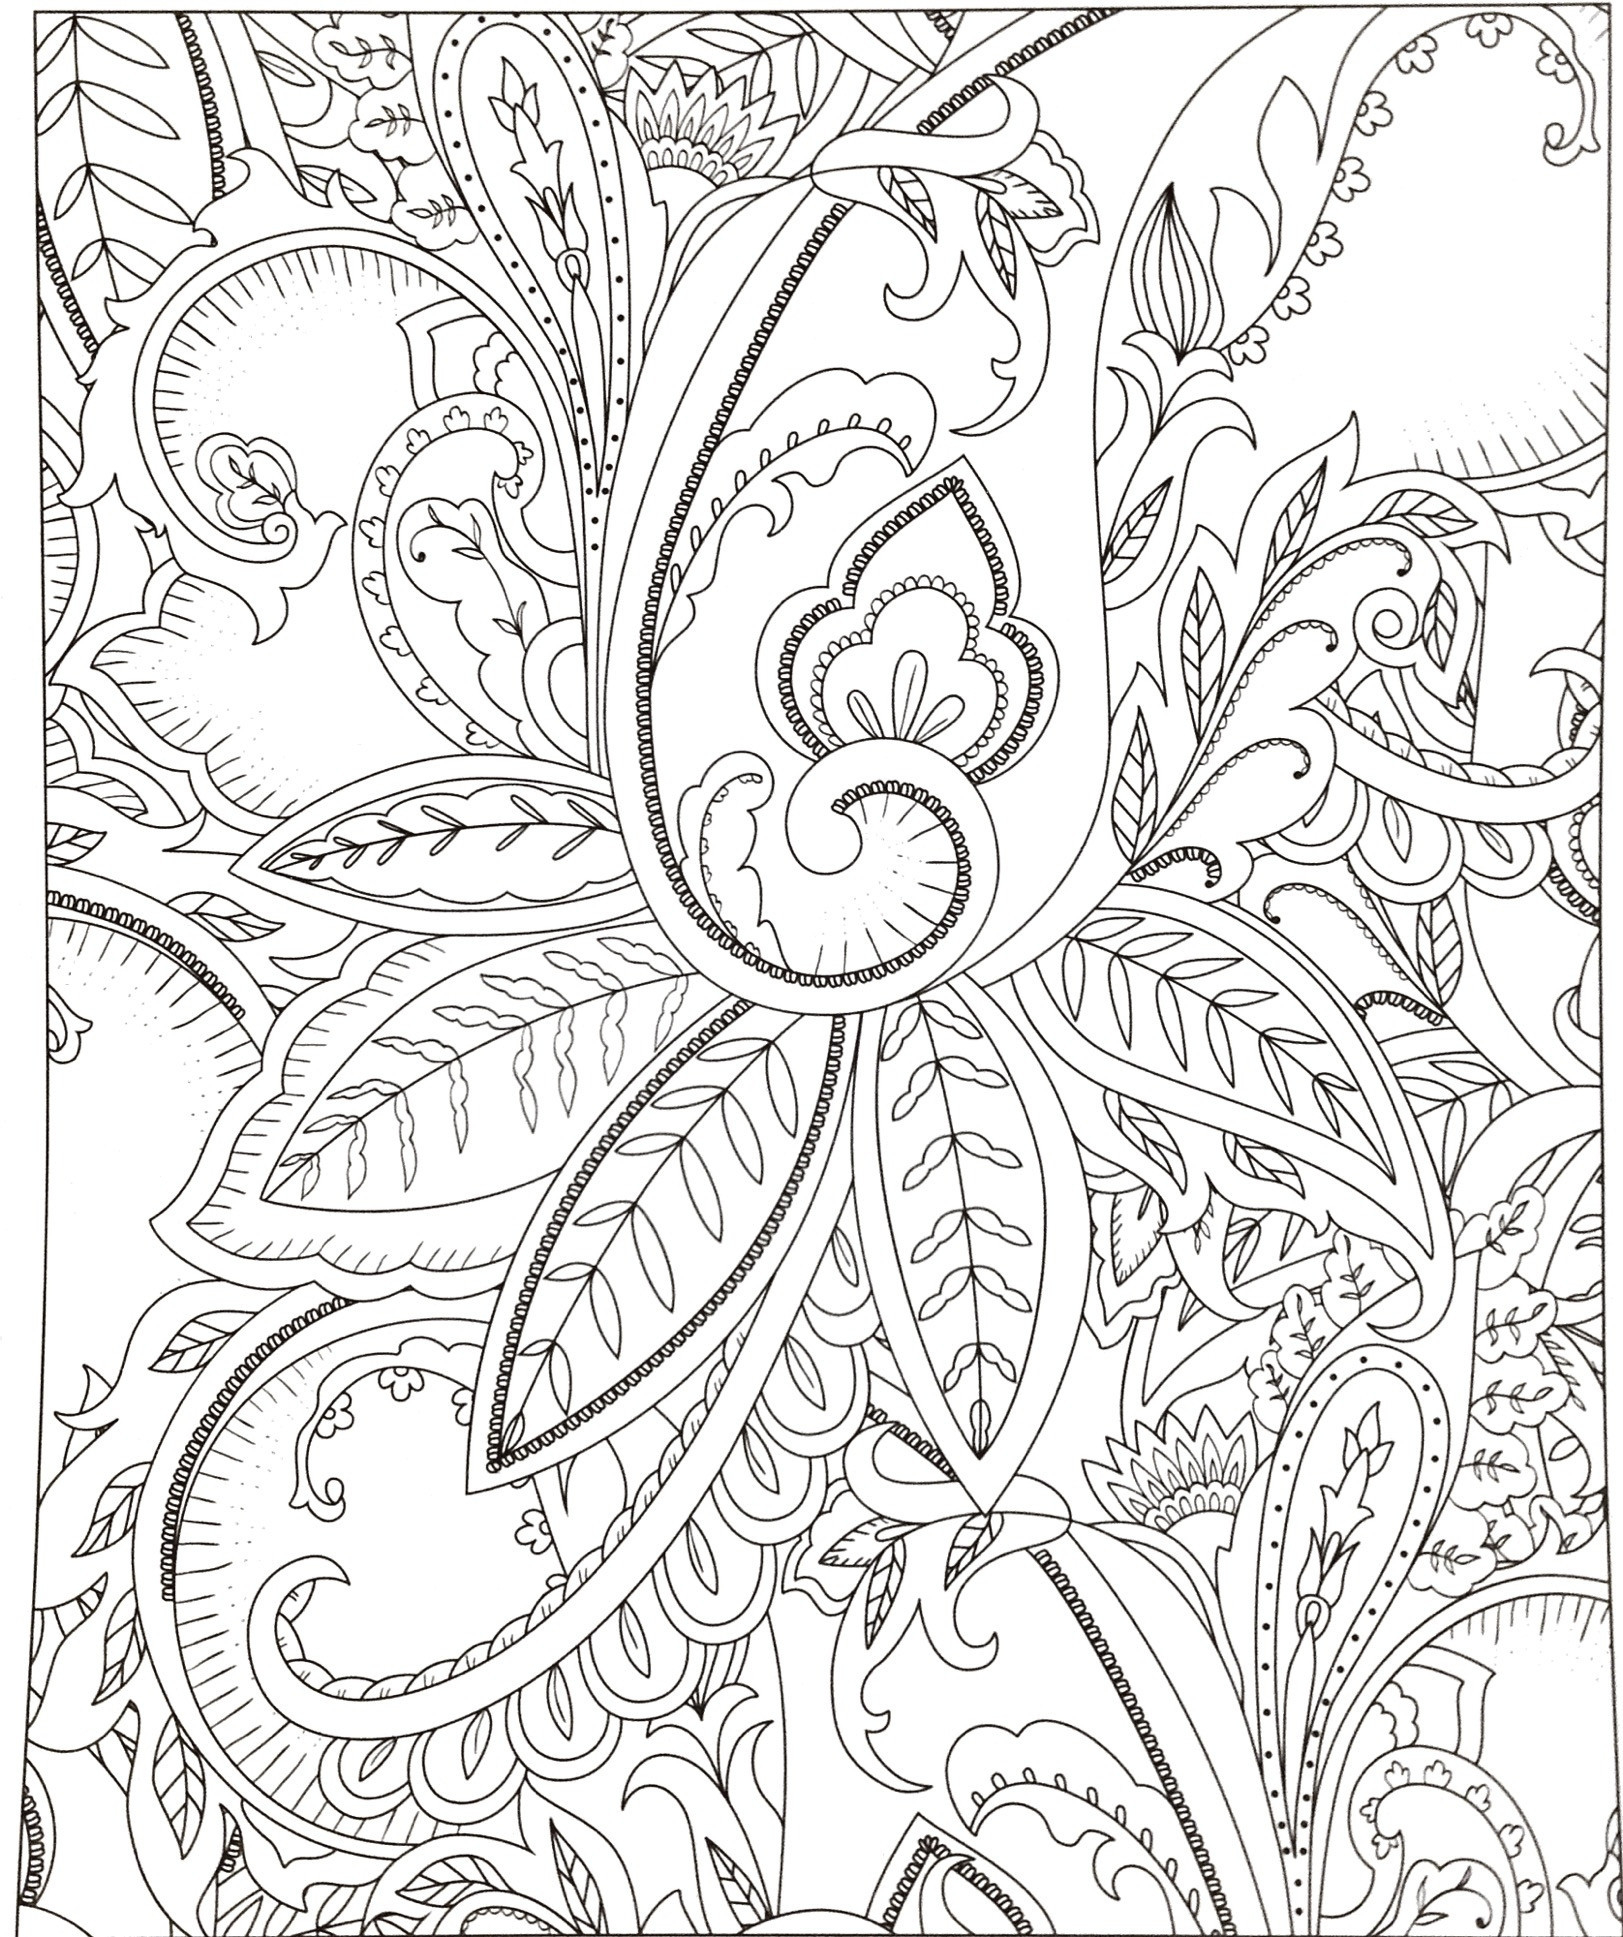 free coloring pages to color online Download-Coloring Pages You Can Color line For Free Fresh Inspirational Quotes Coloring Pages Fresh Awesome Od Dog Coloring 5-m